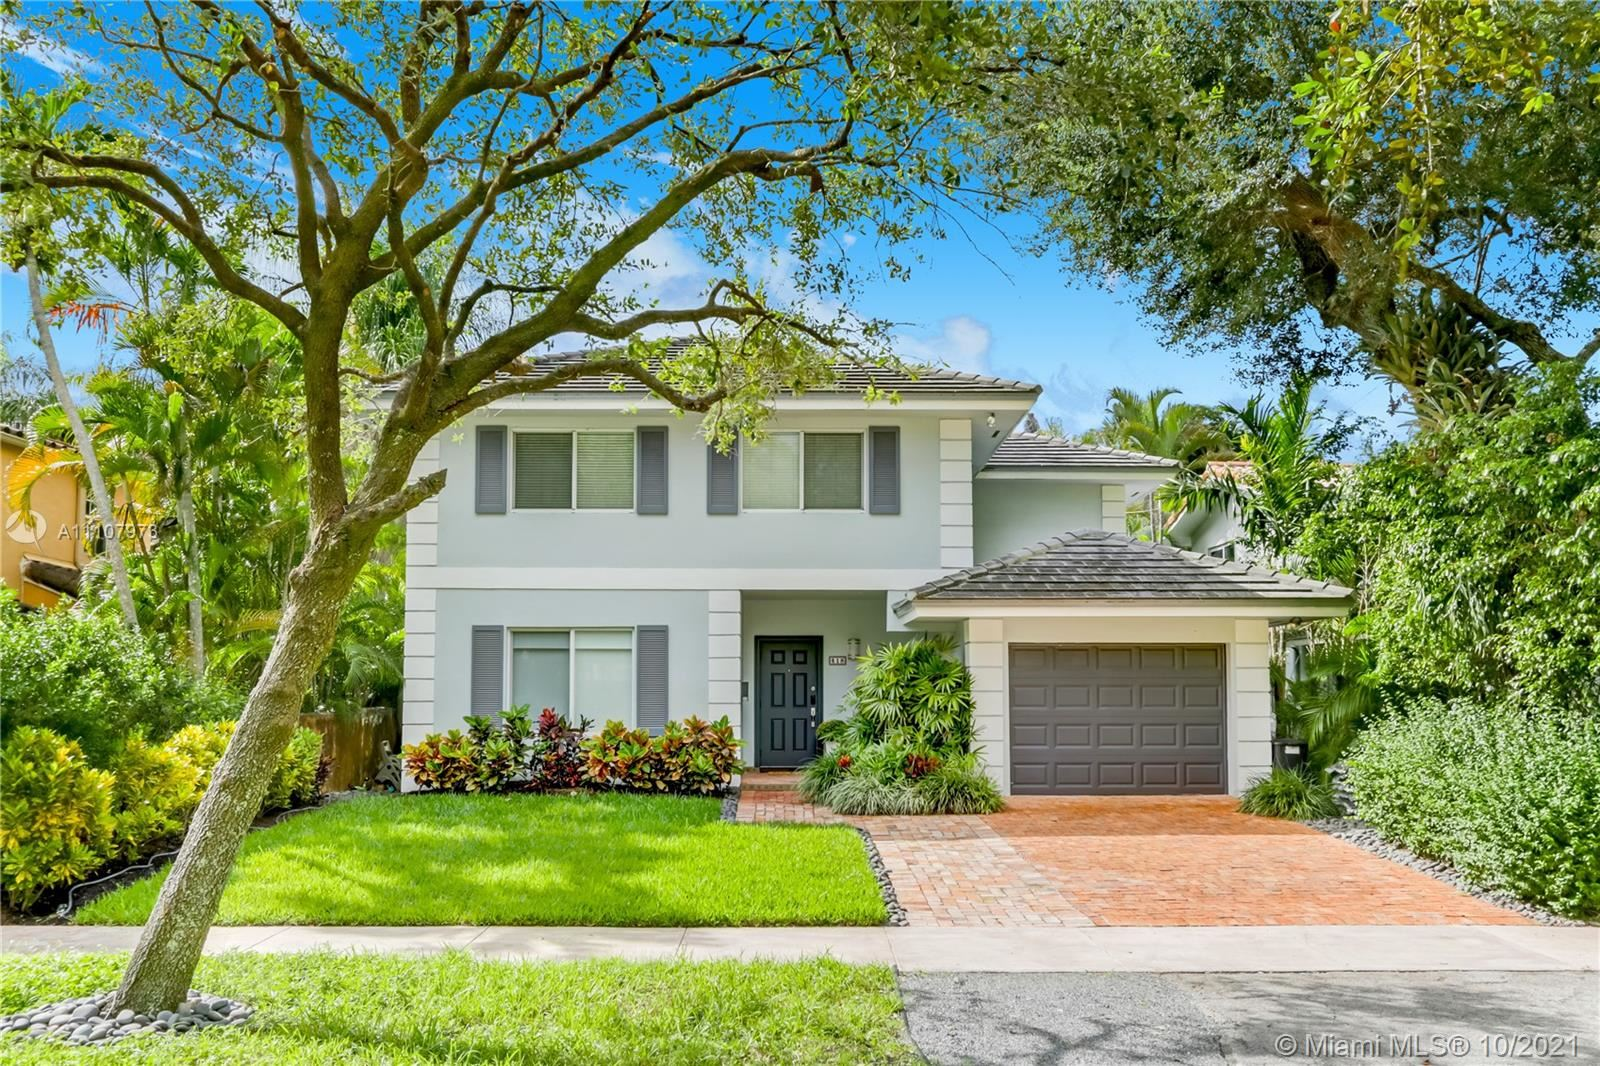 Photo of 418 Bianca Ave, Coral Gables, FL 33146 (MLS # A11107973)